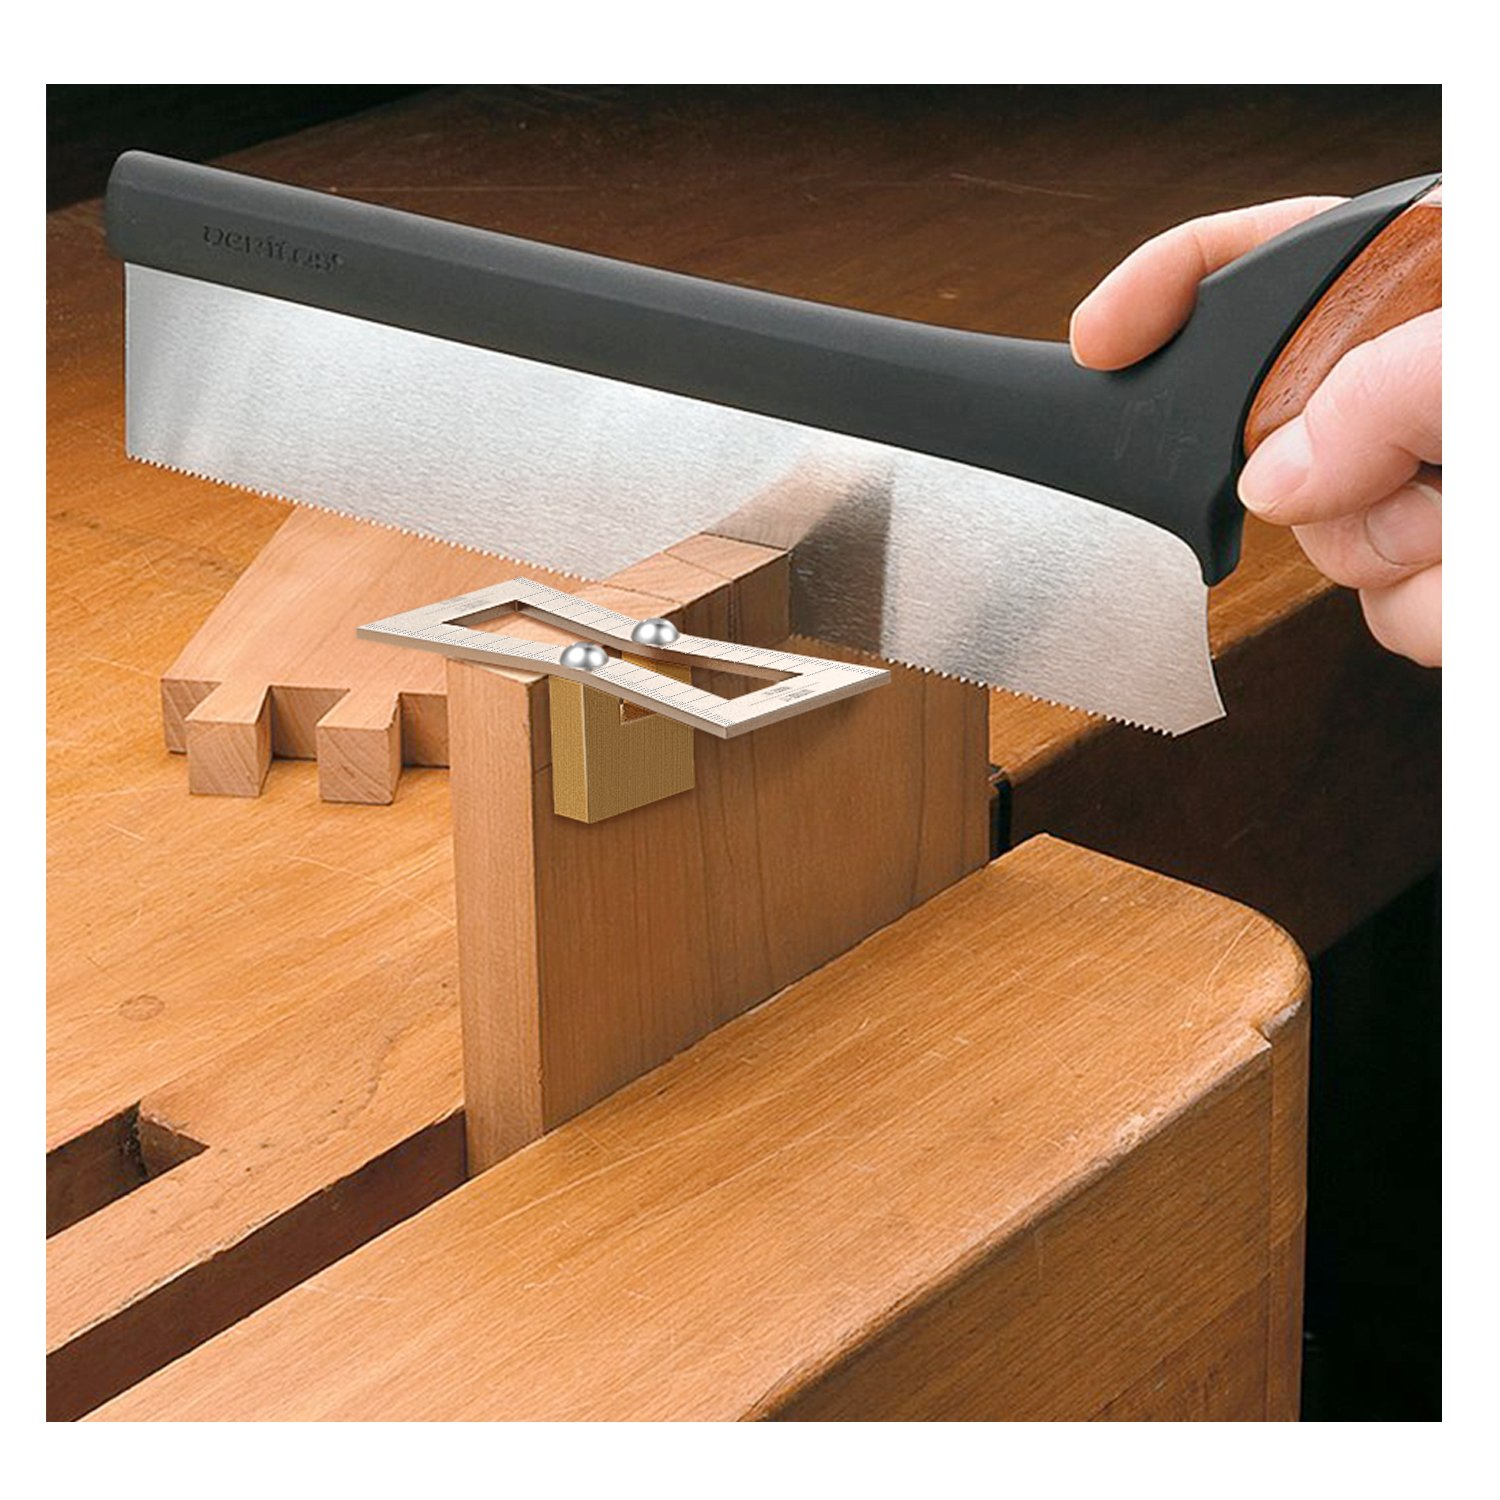 Housolution Dovetail Marker, Hand Cut Wood Joints Gauge Dovetail Guide Tool with Scale, Dovetail Template Size 1:5-1:6 and 1:7-1:8 for Woodworking - Silver by Housolution (Image #3)